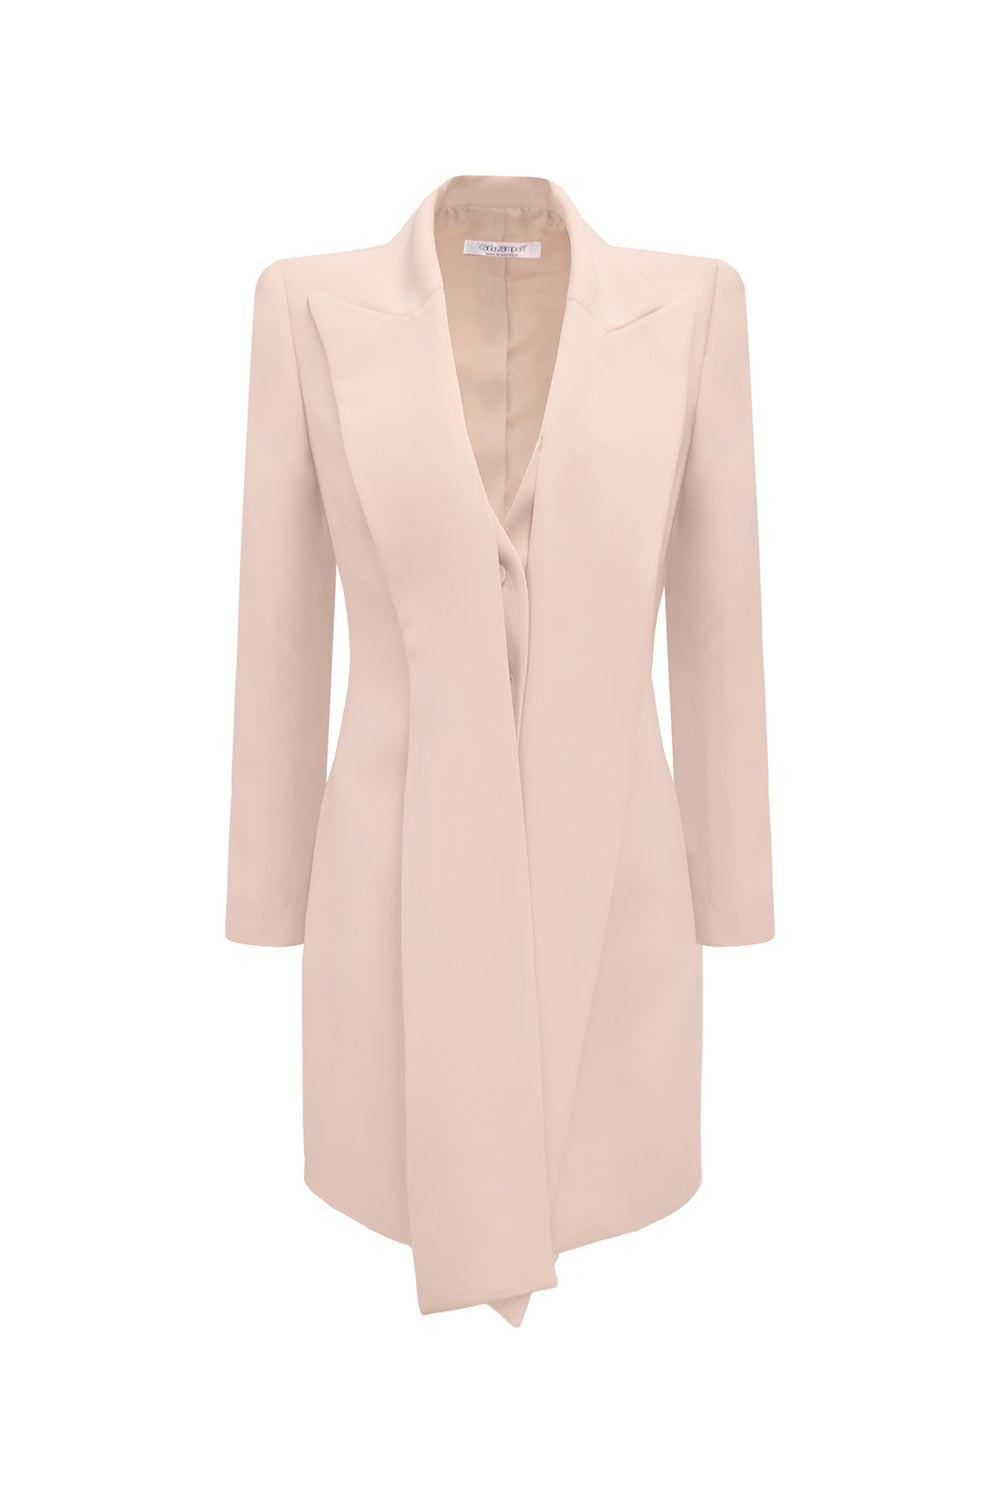 THE MONACO CHIC BLAZER